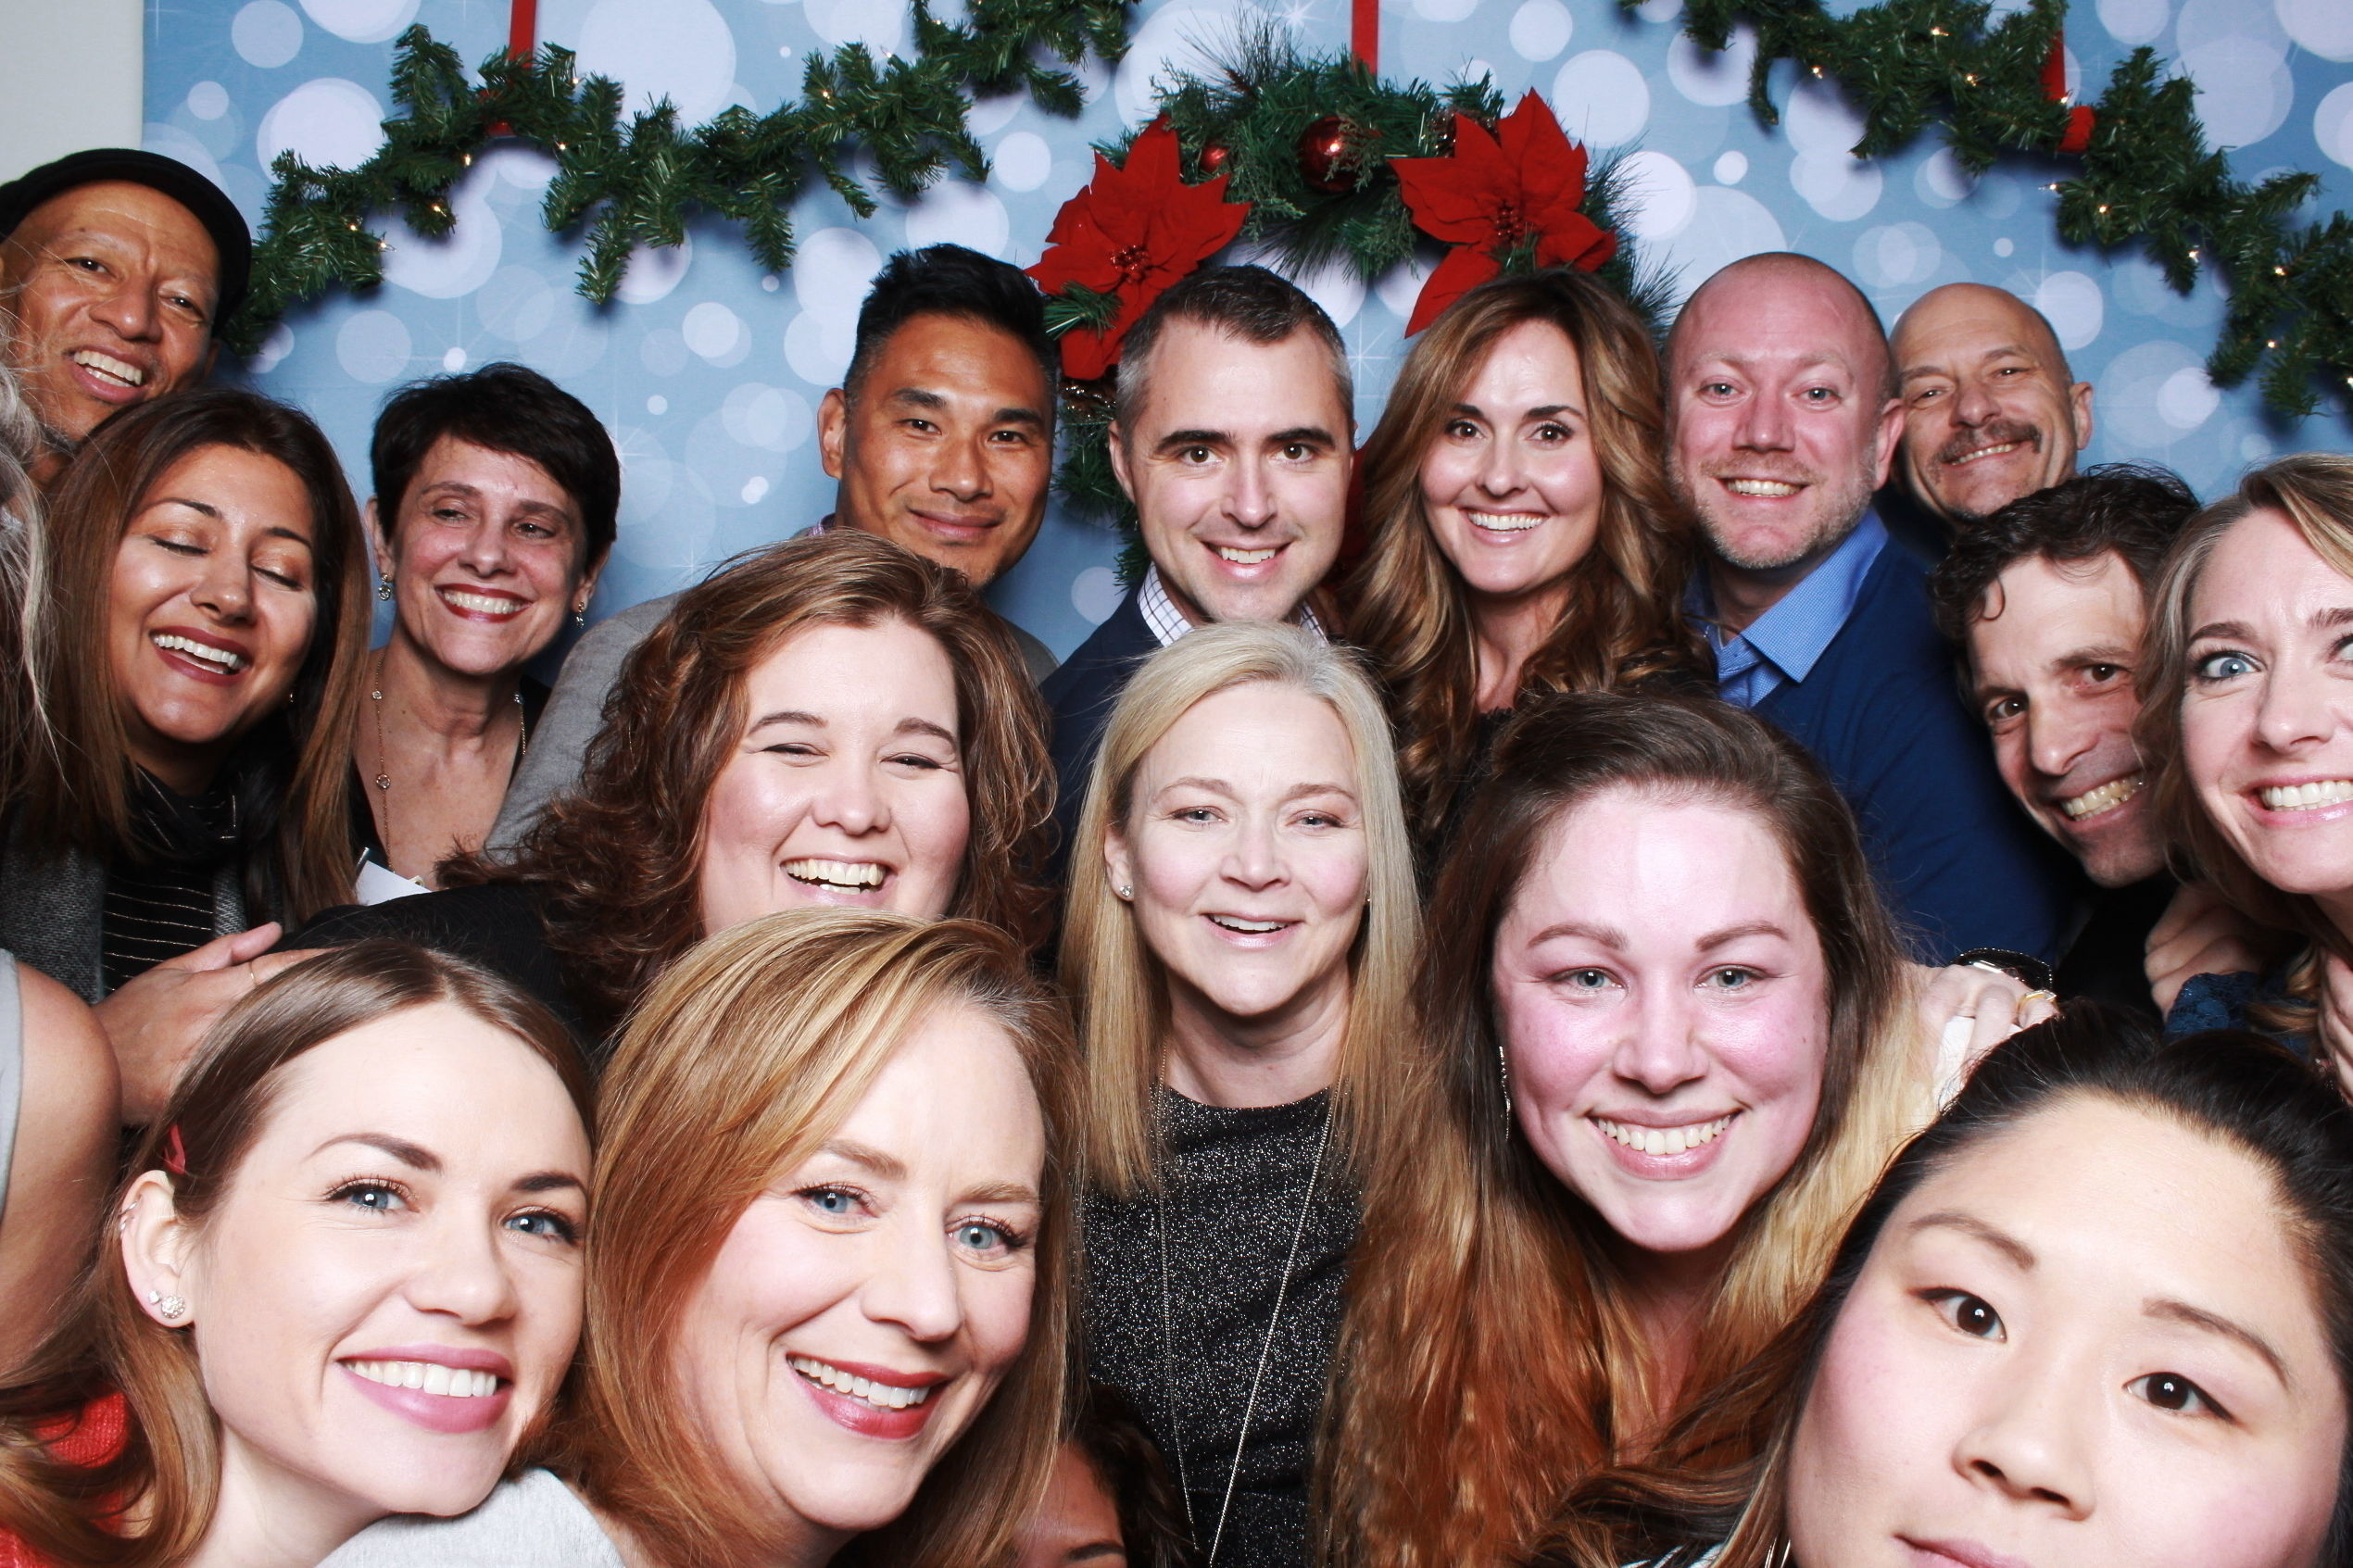 Too many people in a photo booth